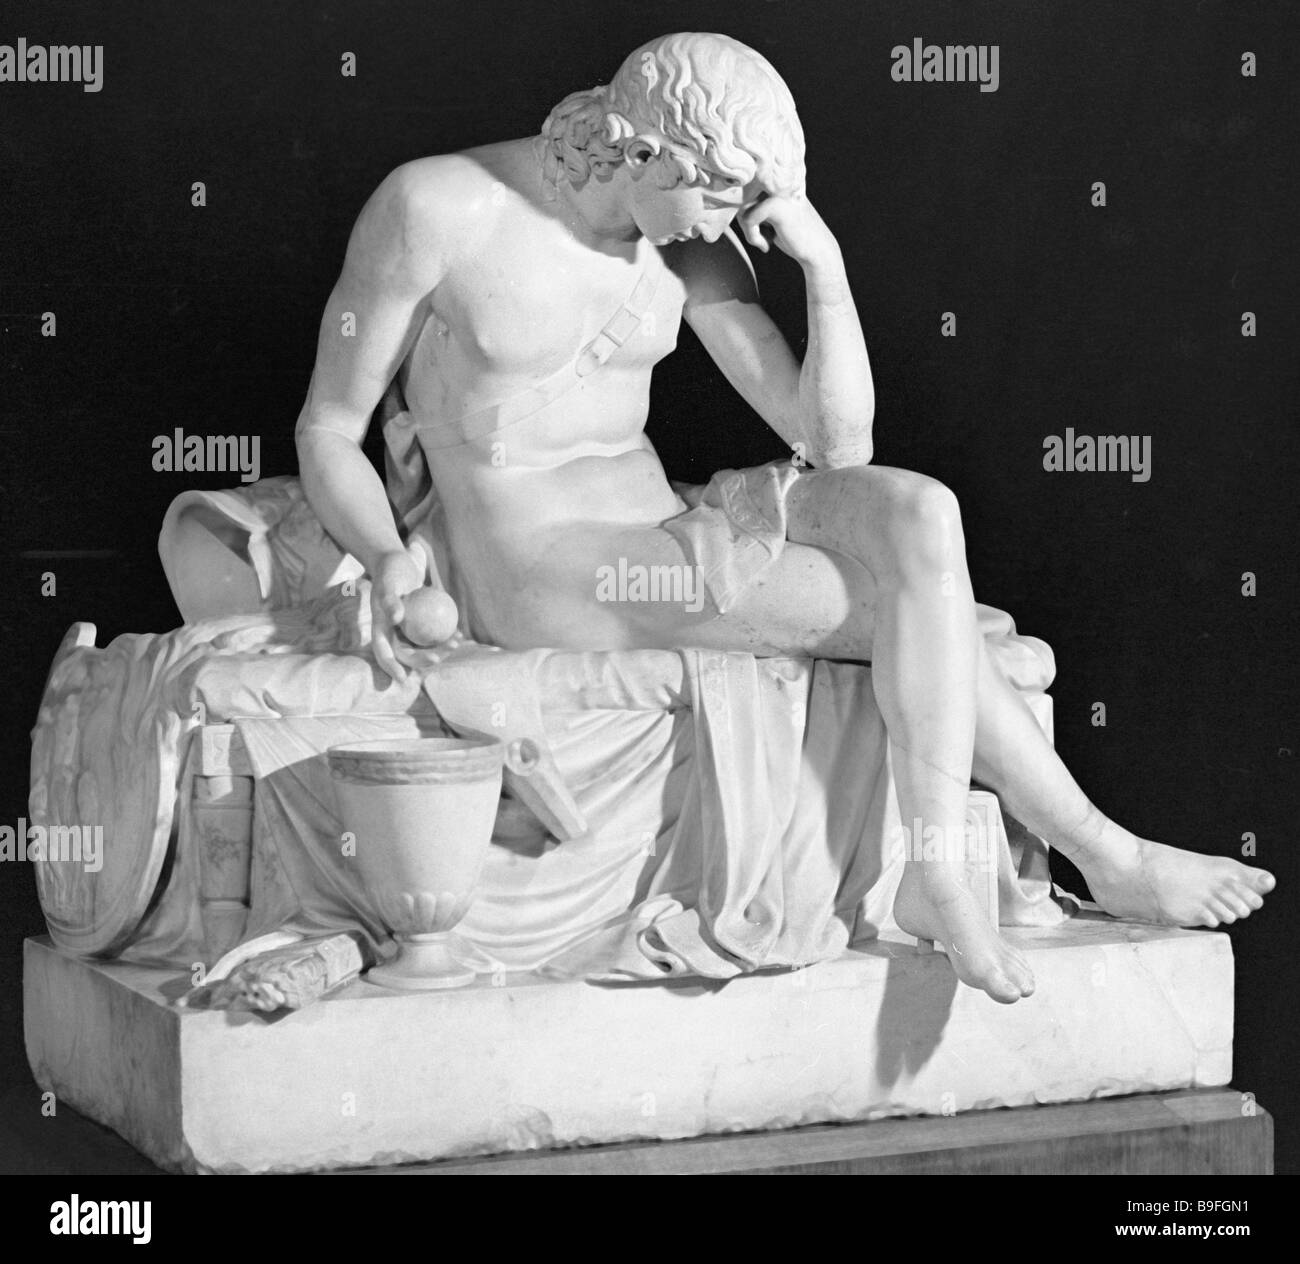 Wake of Alexander the Great a marble sculpture by Mikhail Kozlovsky Collection of the State Russian museum Stock Photo